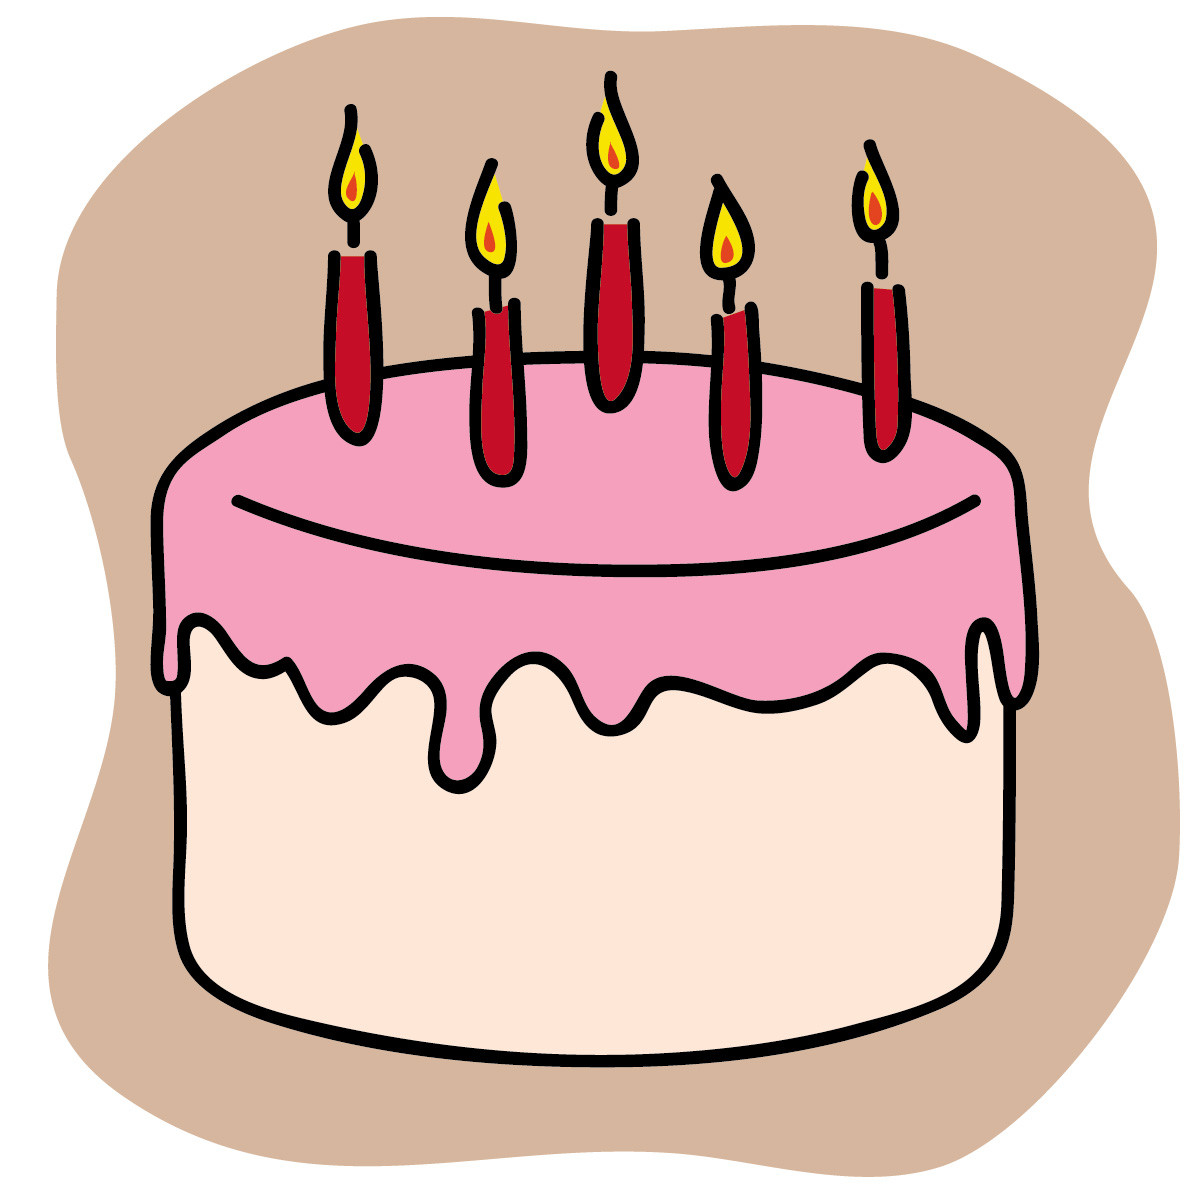 Clipart 30th Happy Birthday Clip Art Images Cake free image.